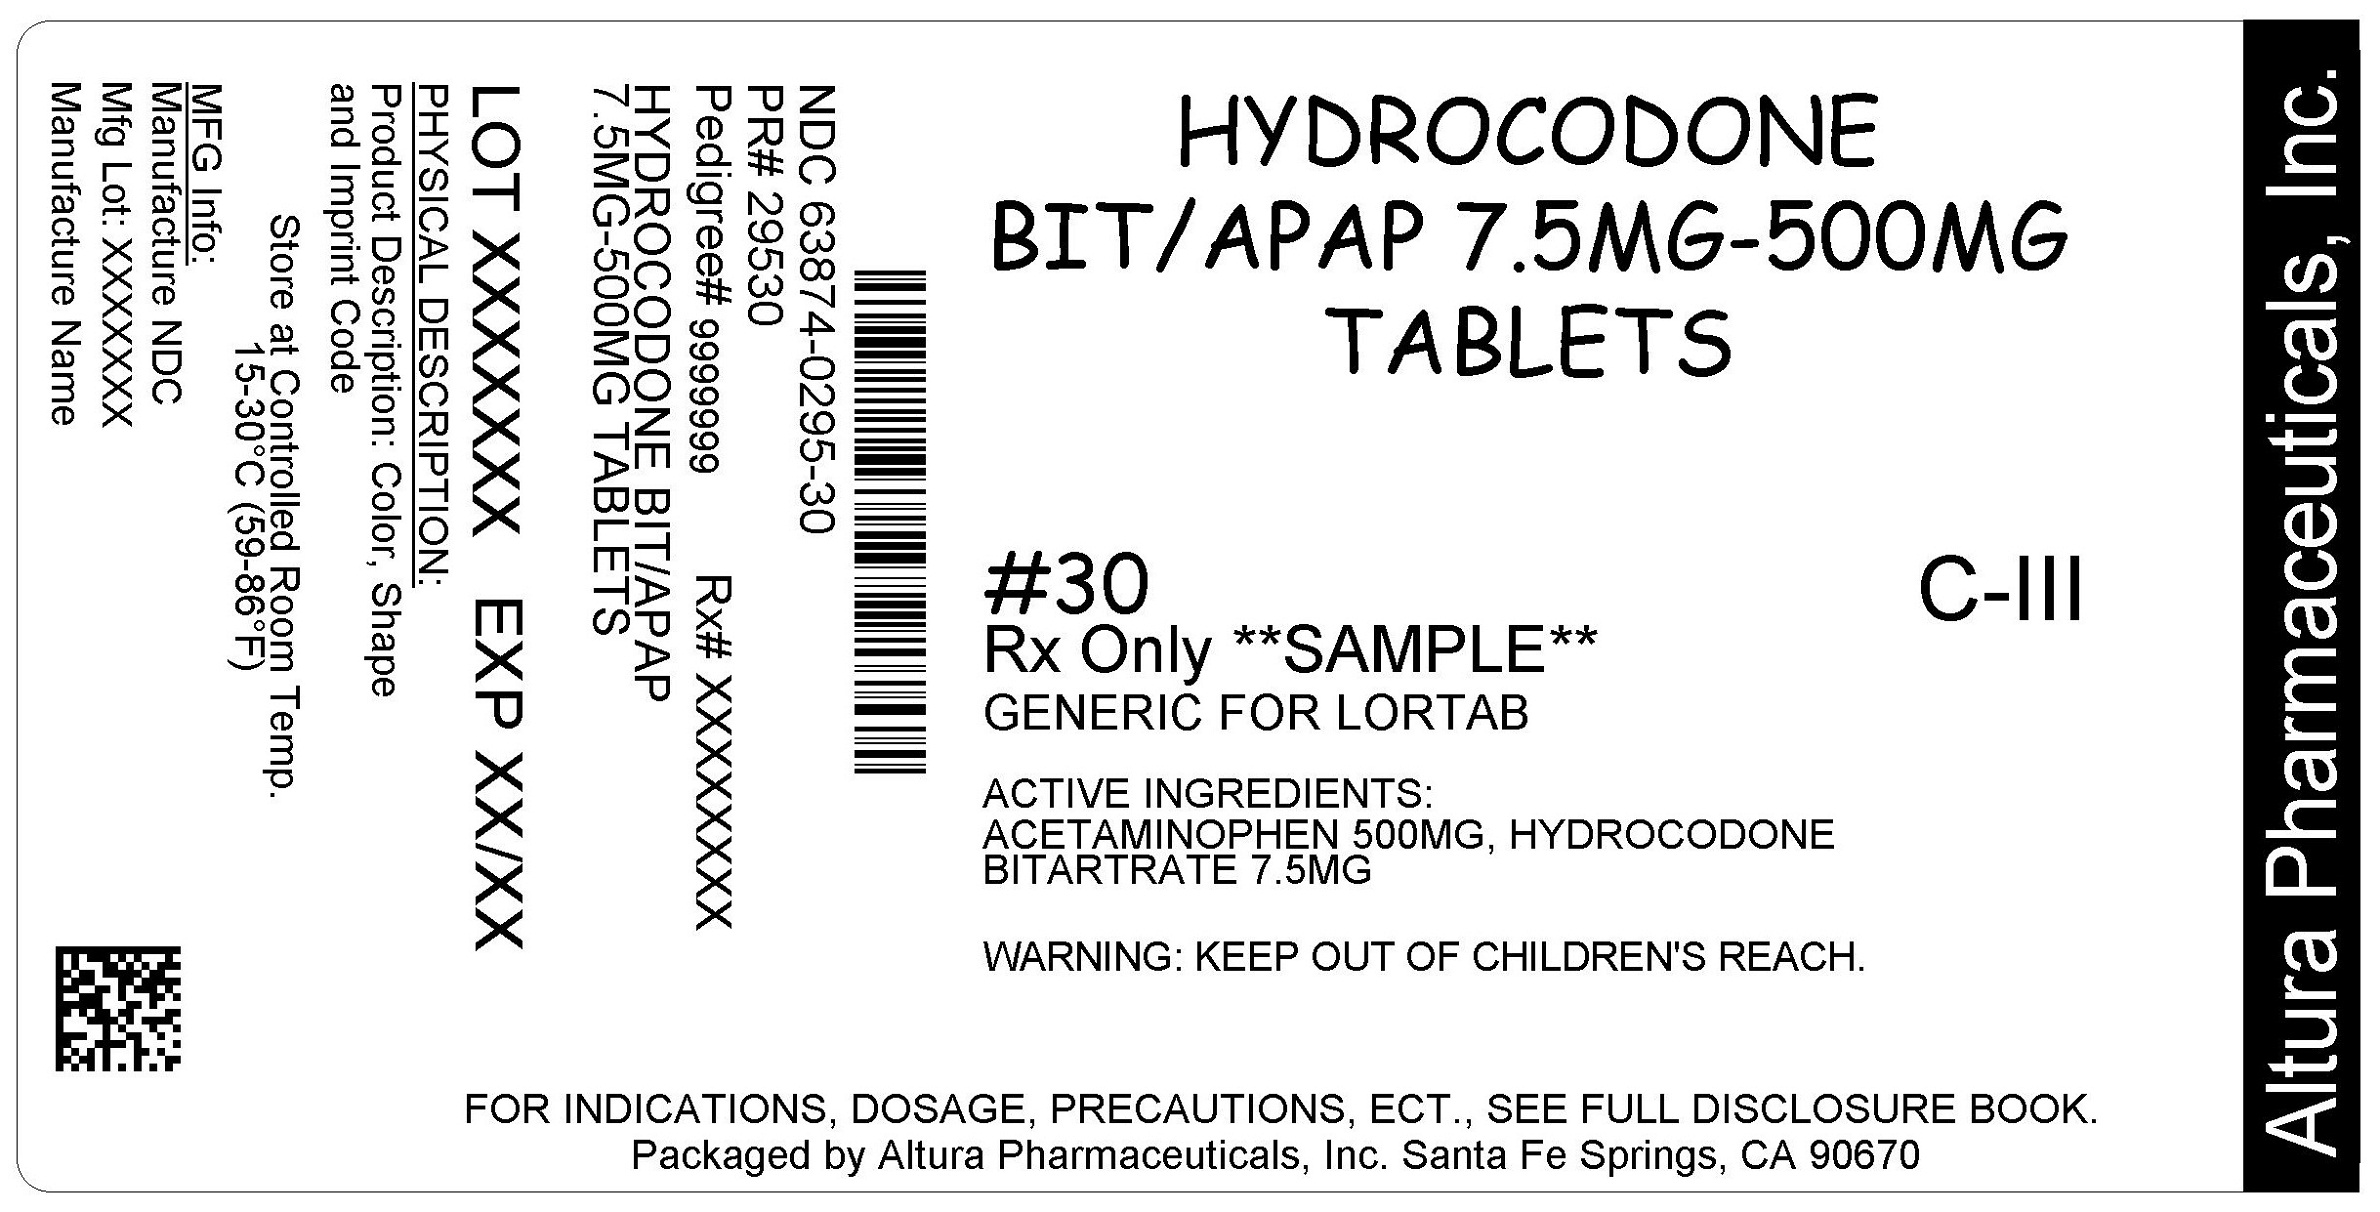 This is an image of the label for 7.5 mg/500 mg Hydrocodone Bitartrate and Acetaminophen Tablets.